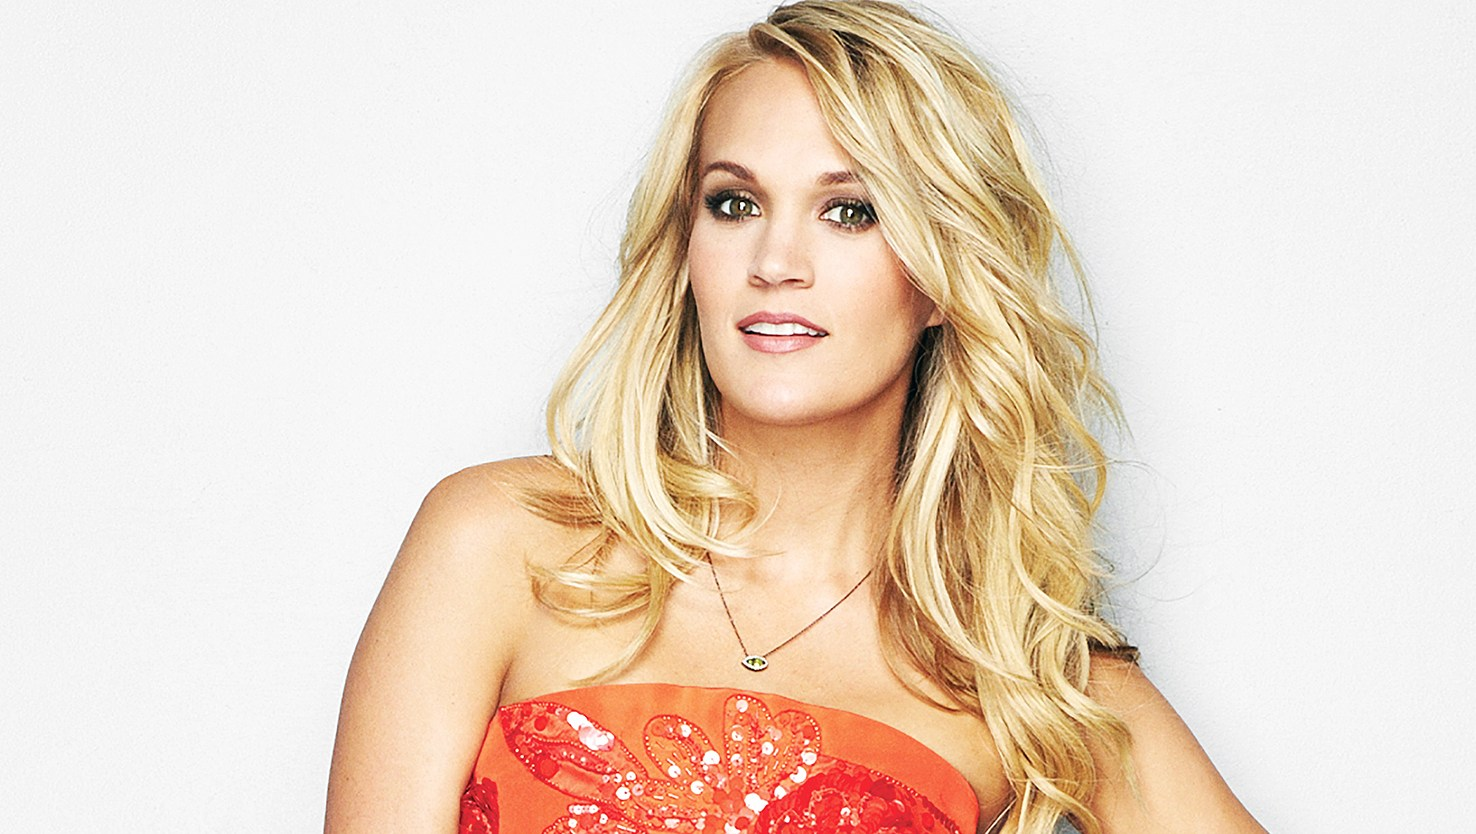 Carrie Underwood Redbook Cover Motherhood Controversial Comment